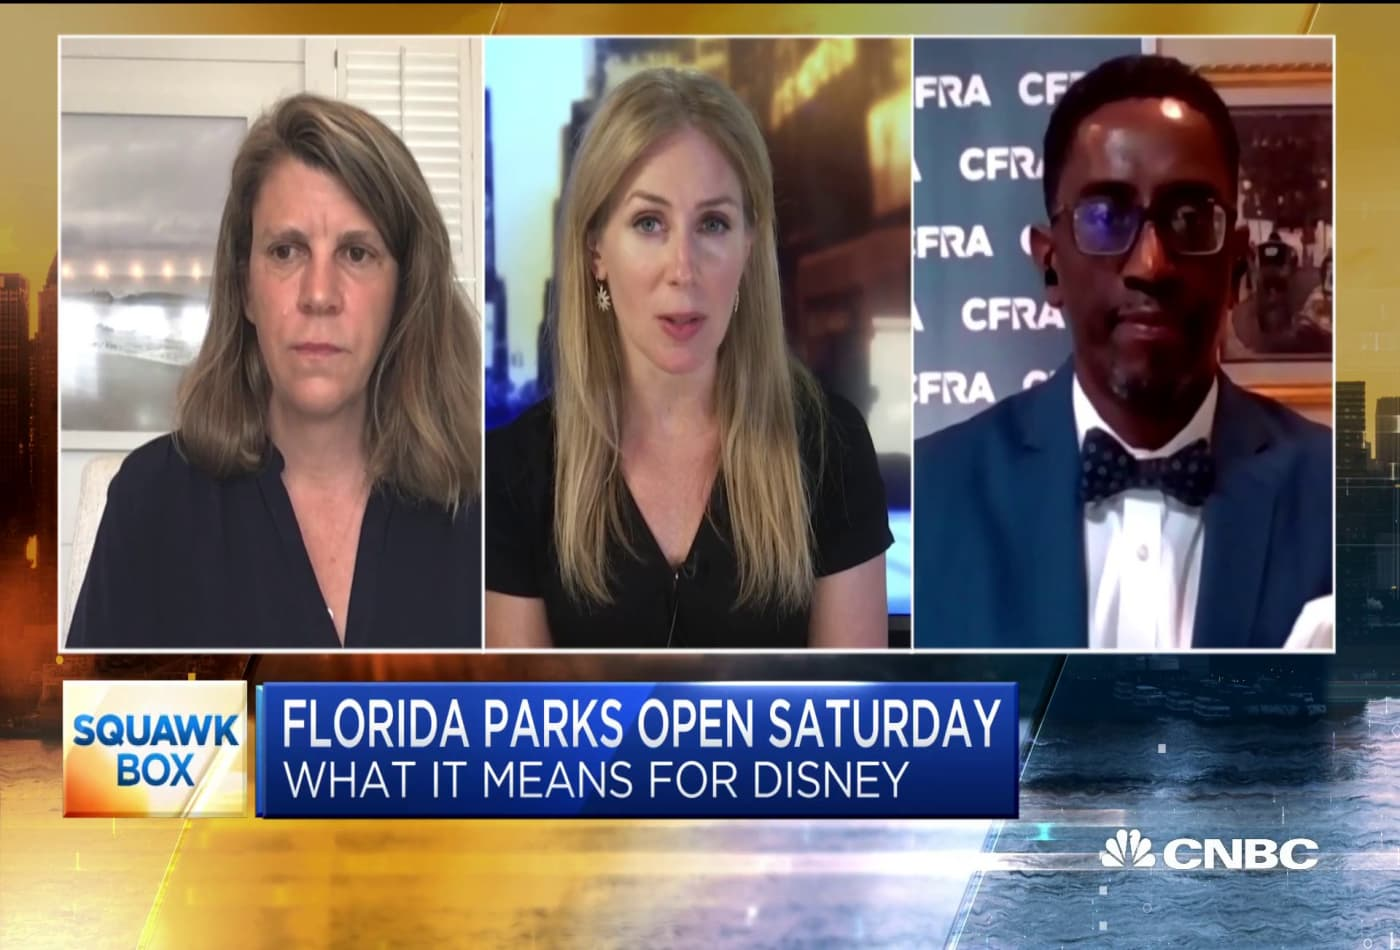 Two media analysts on Disney taking steps to reopen parks in Florida